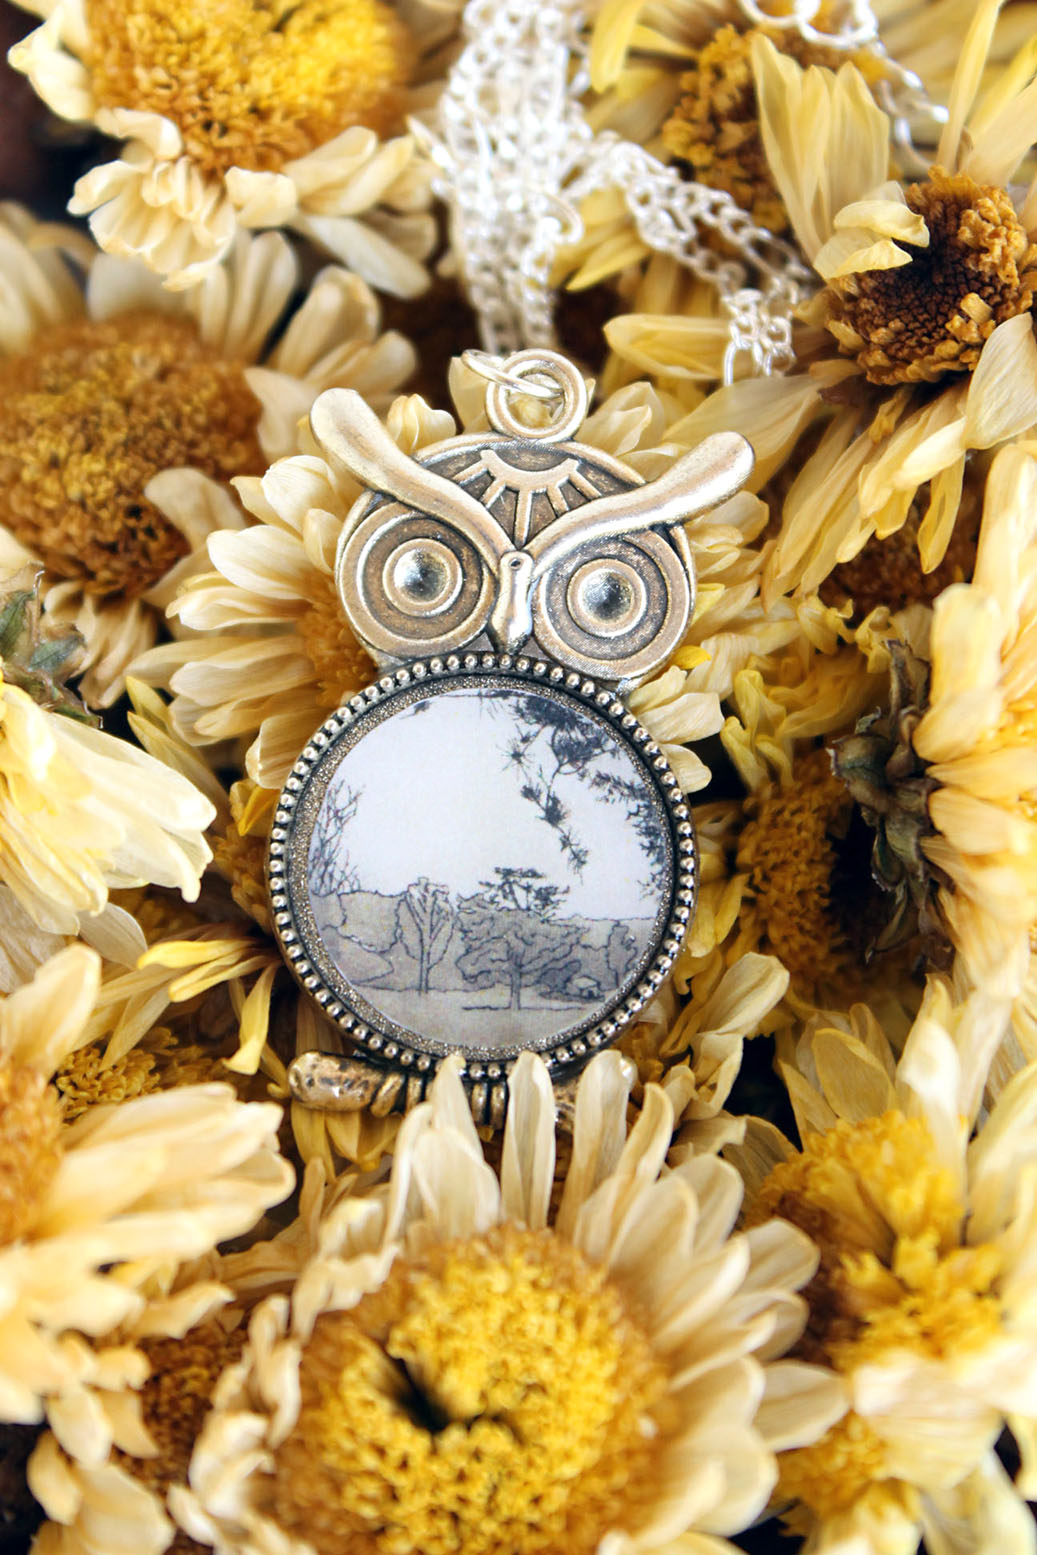 Summer Country No.2 Necklace-silver owl necklace with drawing of field and trees handmade by Jeffcoat Art